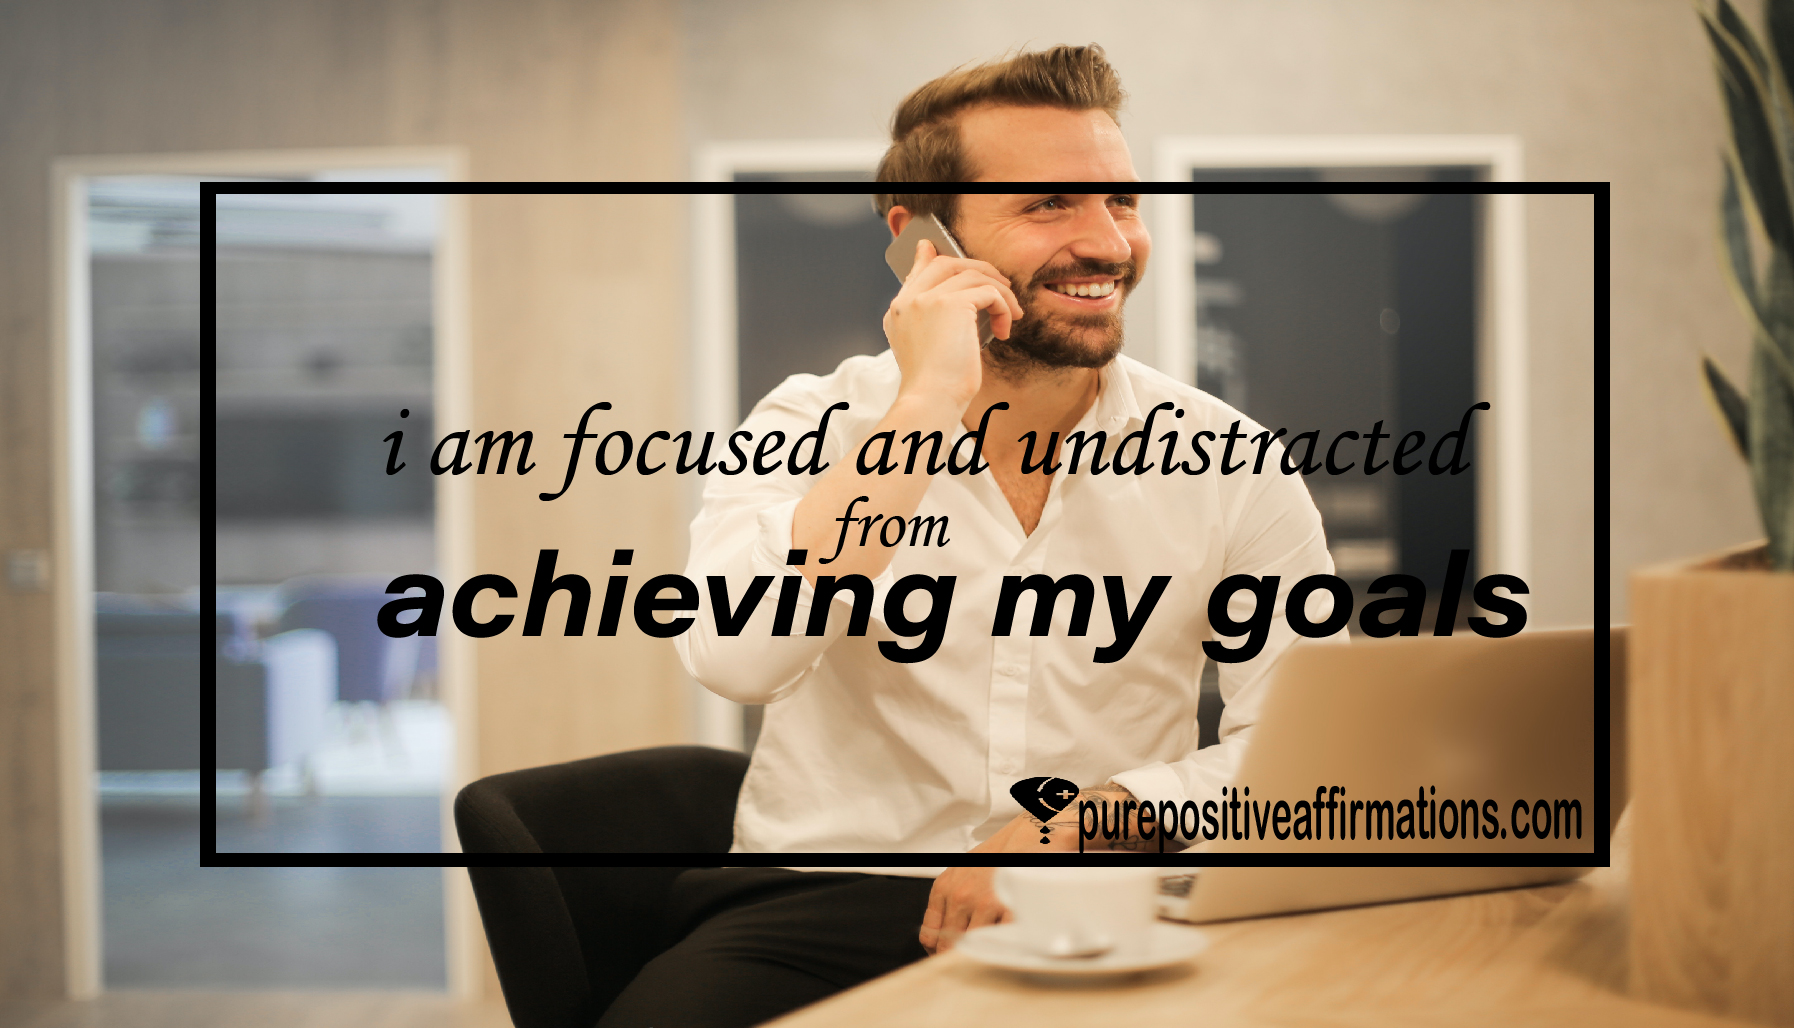 I am focused and undistracted from achieving my goals